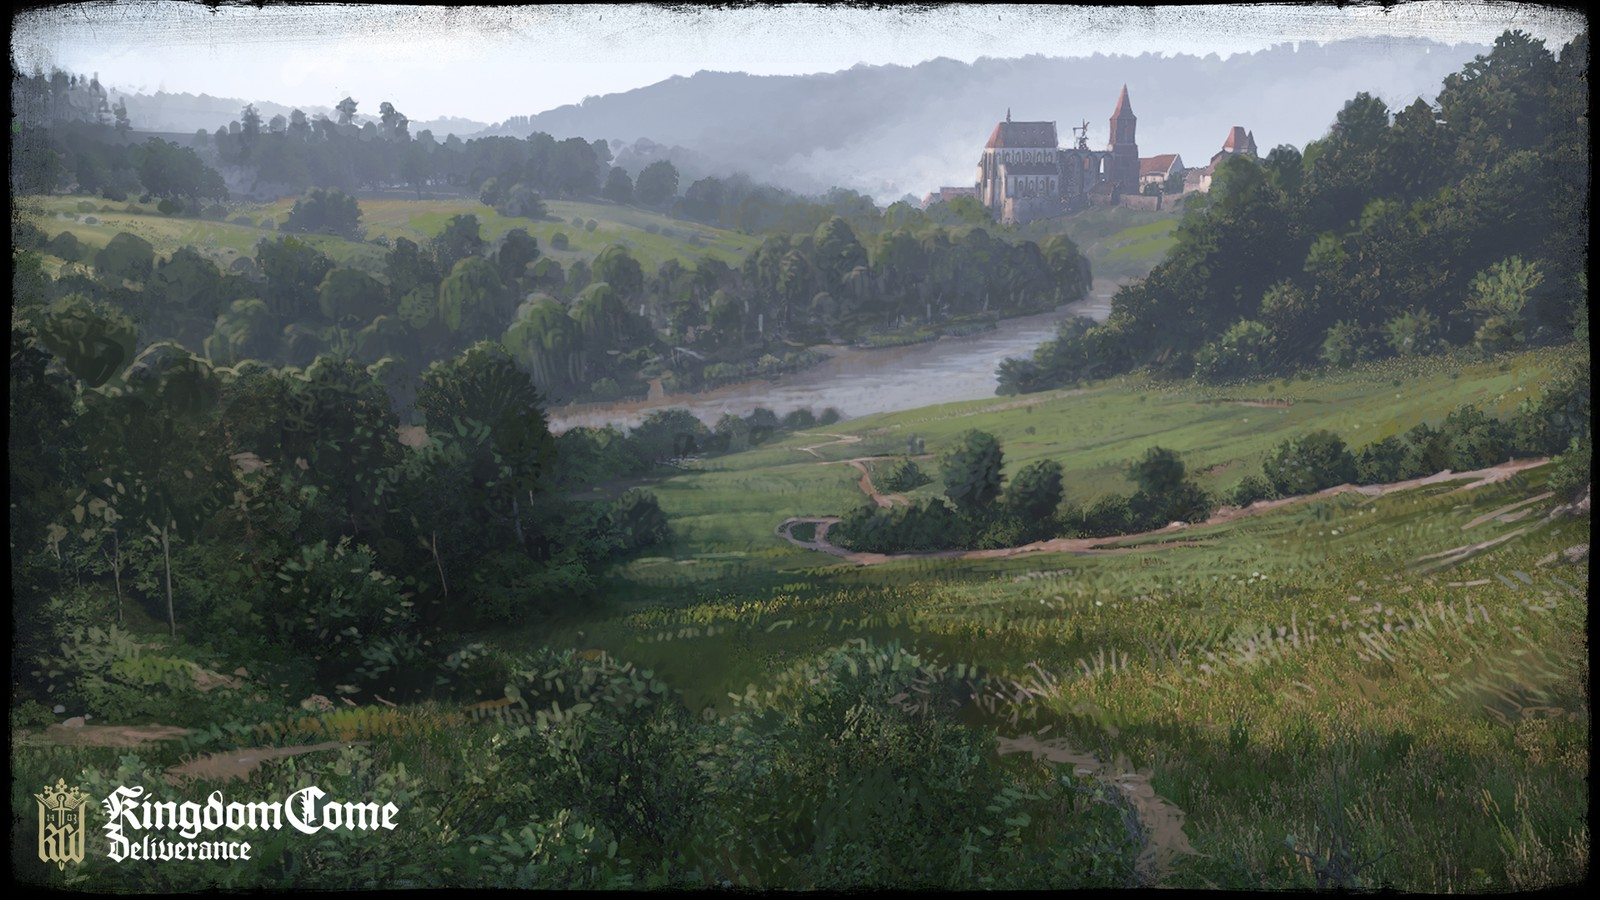 Visuals | kingdom come: deliverance.